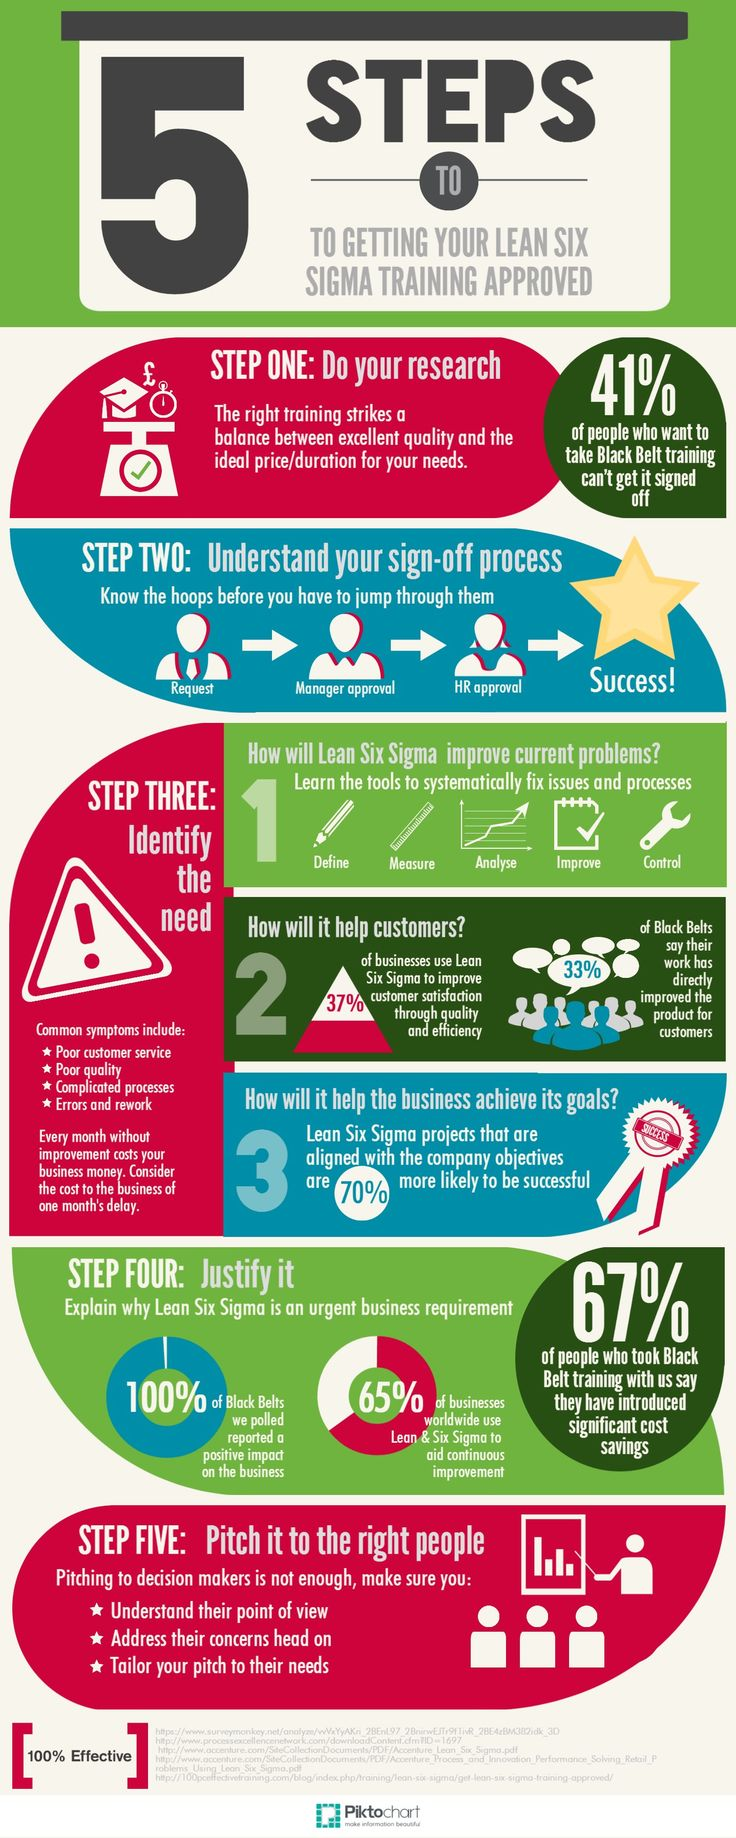 In our new infographic we explore the five steps you need to take to get your Lean Six Sigma training signed off in no time.